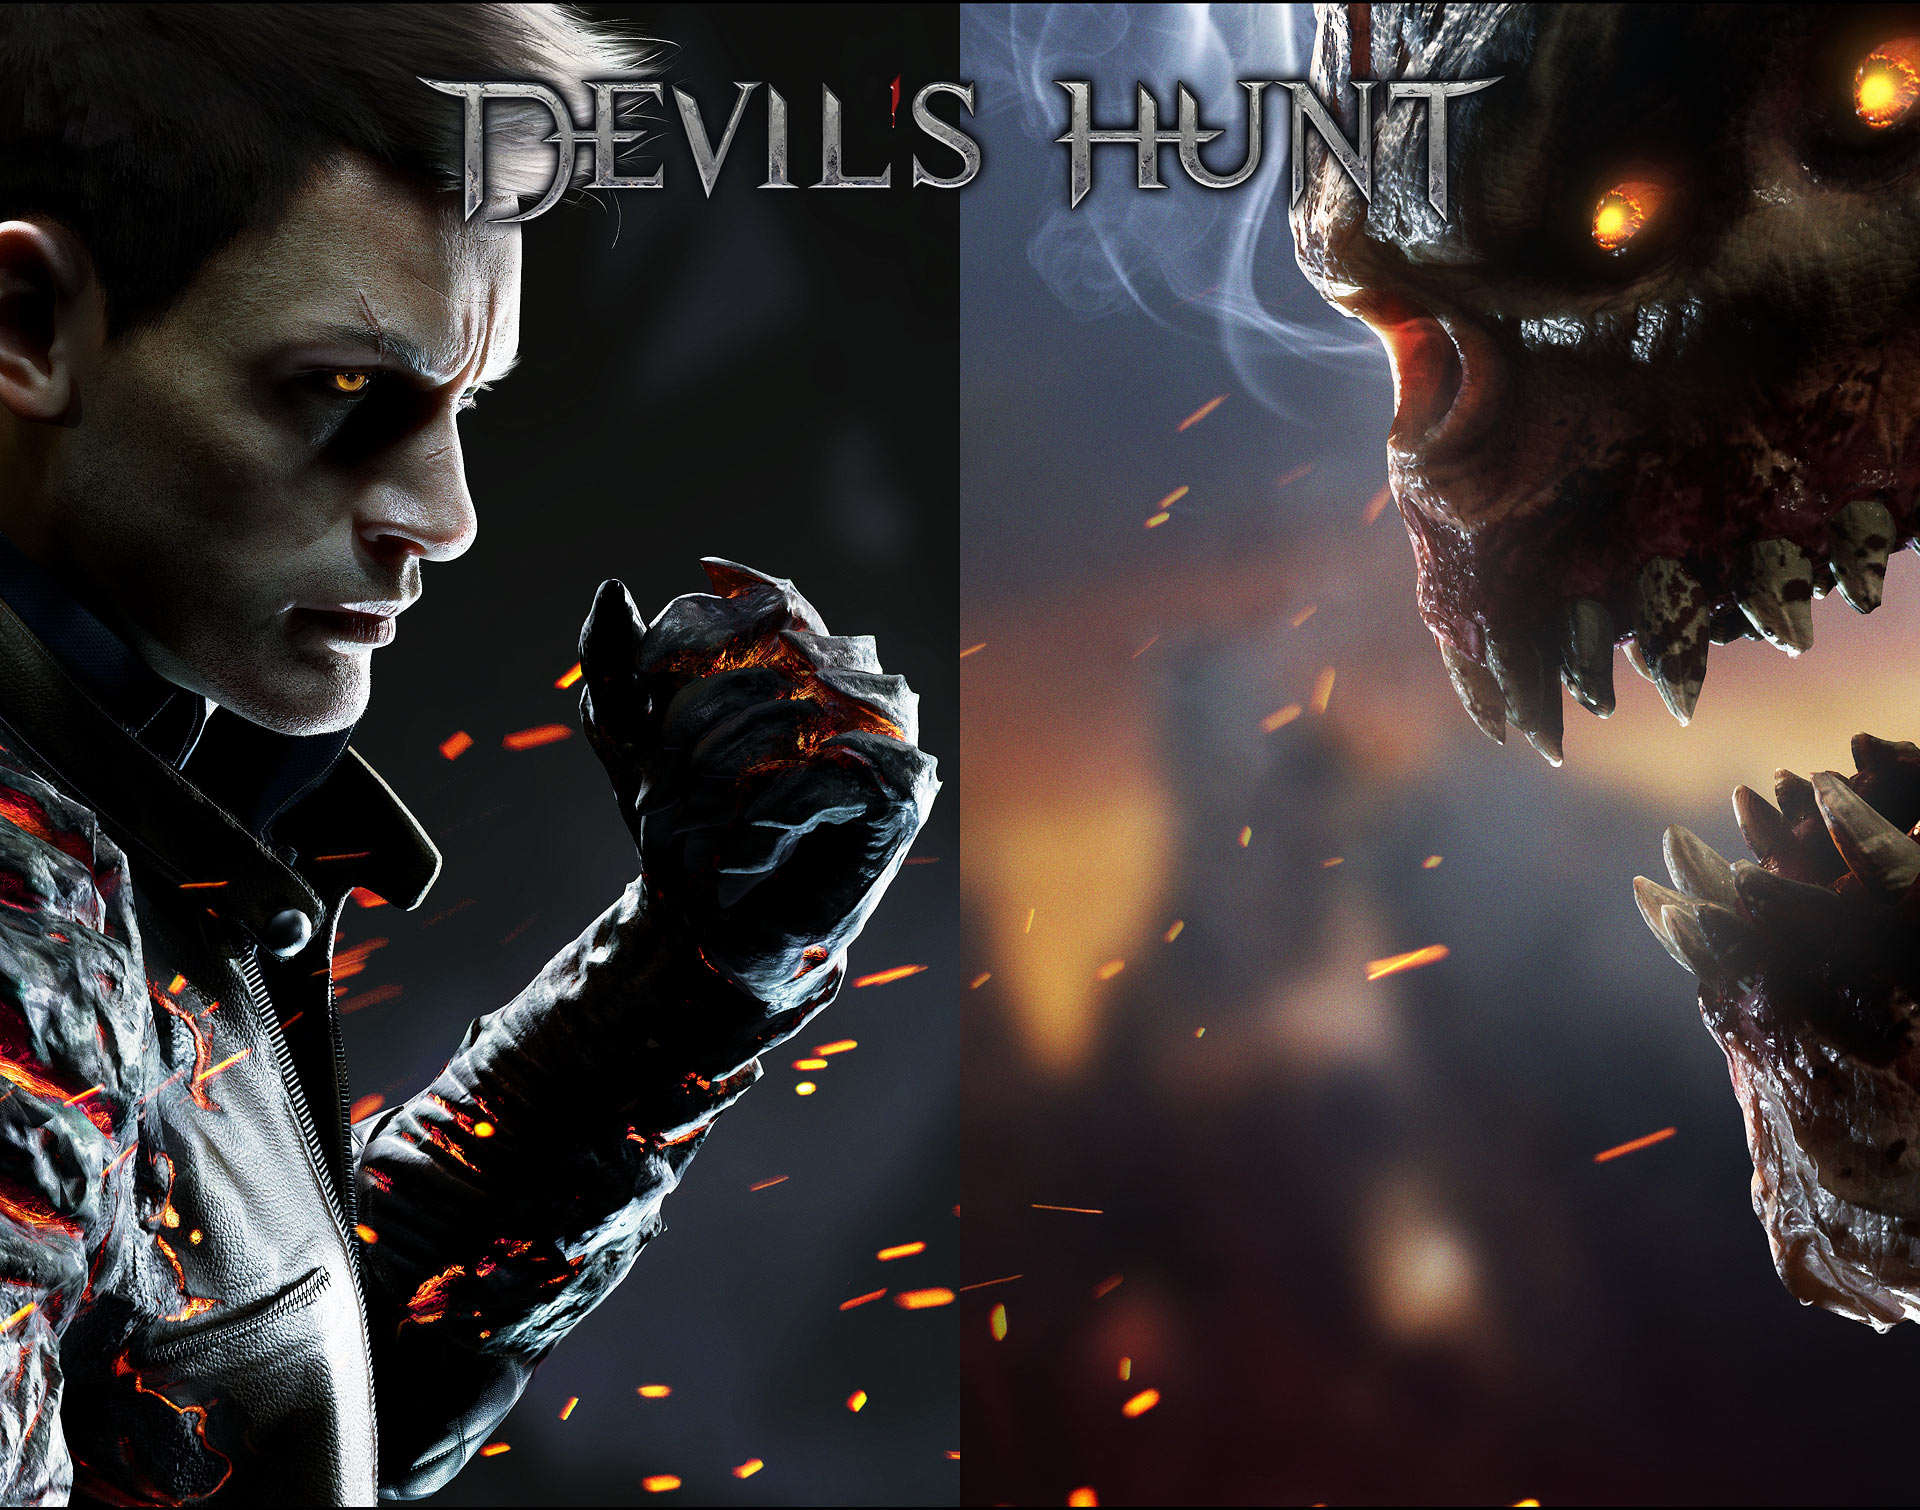 Devils Hunt Promo Art